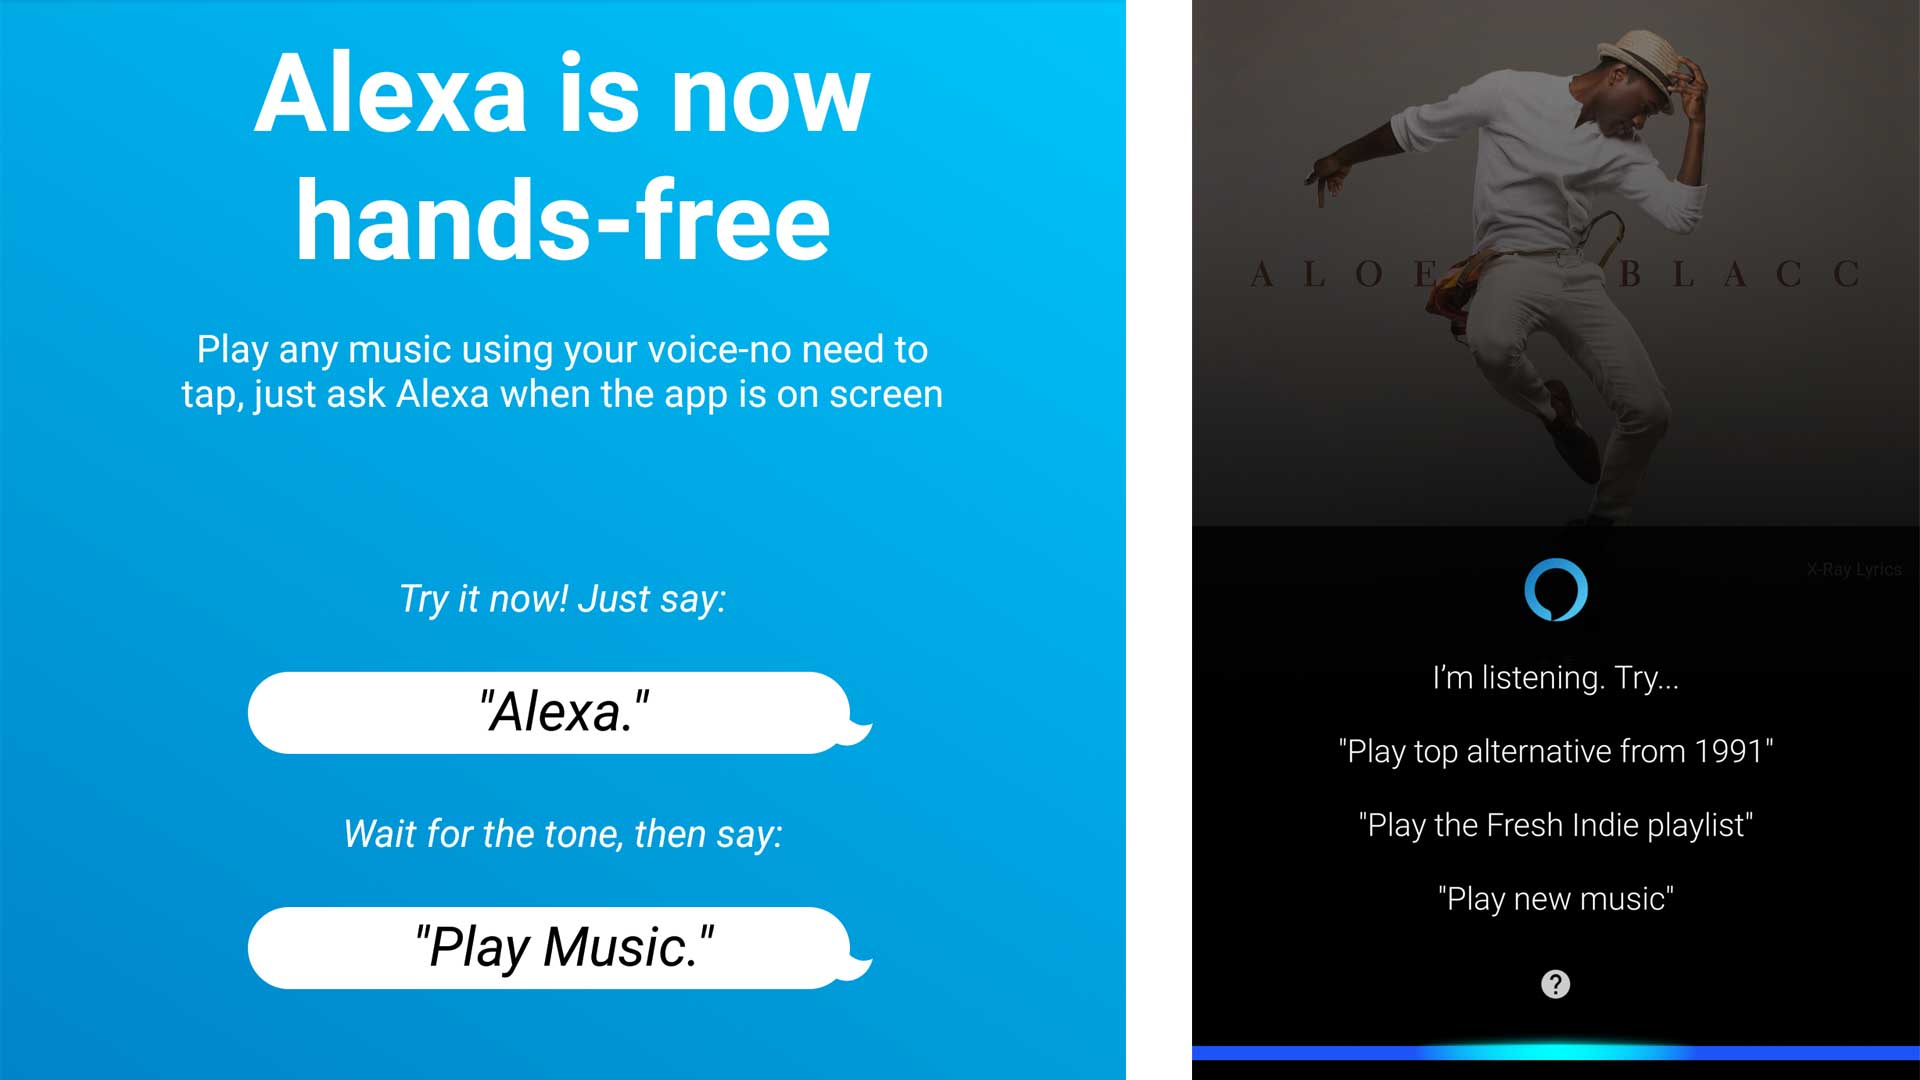 Alexa is now hands-free in the Amazon Music app on Android